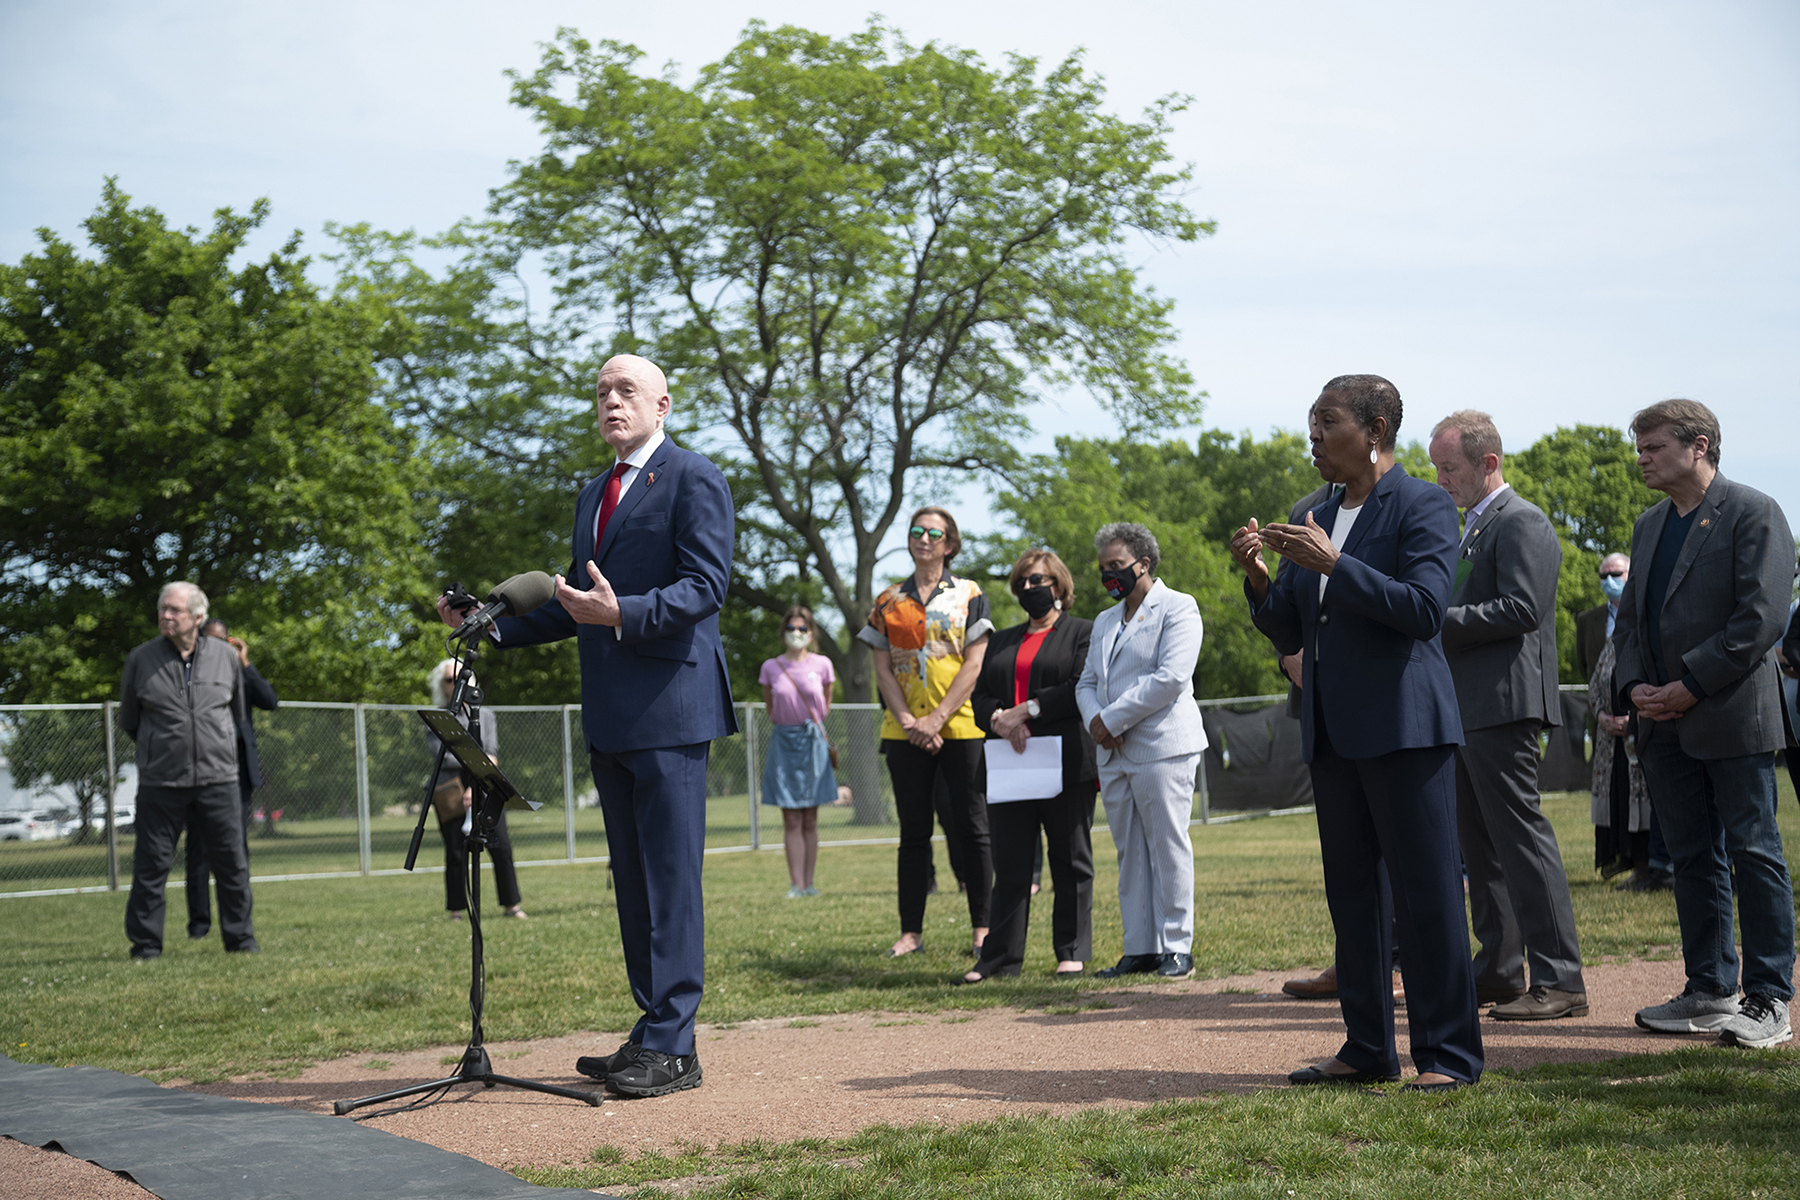 Illinois House Majority Leader Greg Harris, one of the few elected officials openly living with HIV, speaks at the groundbreaking of the AIDS Garden memorial